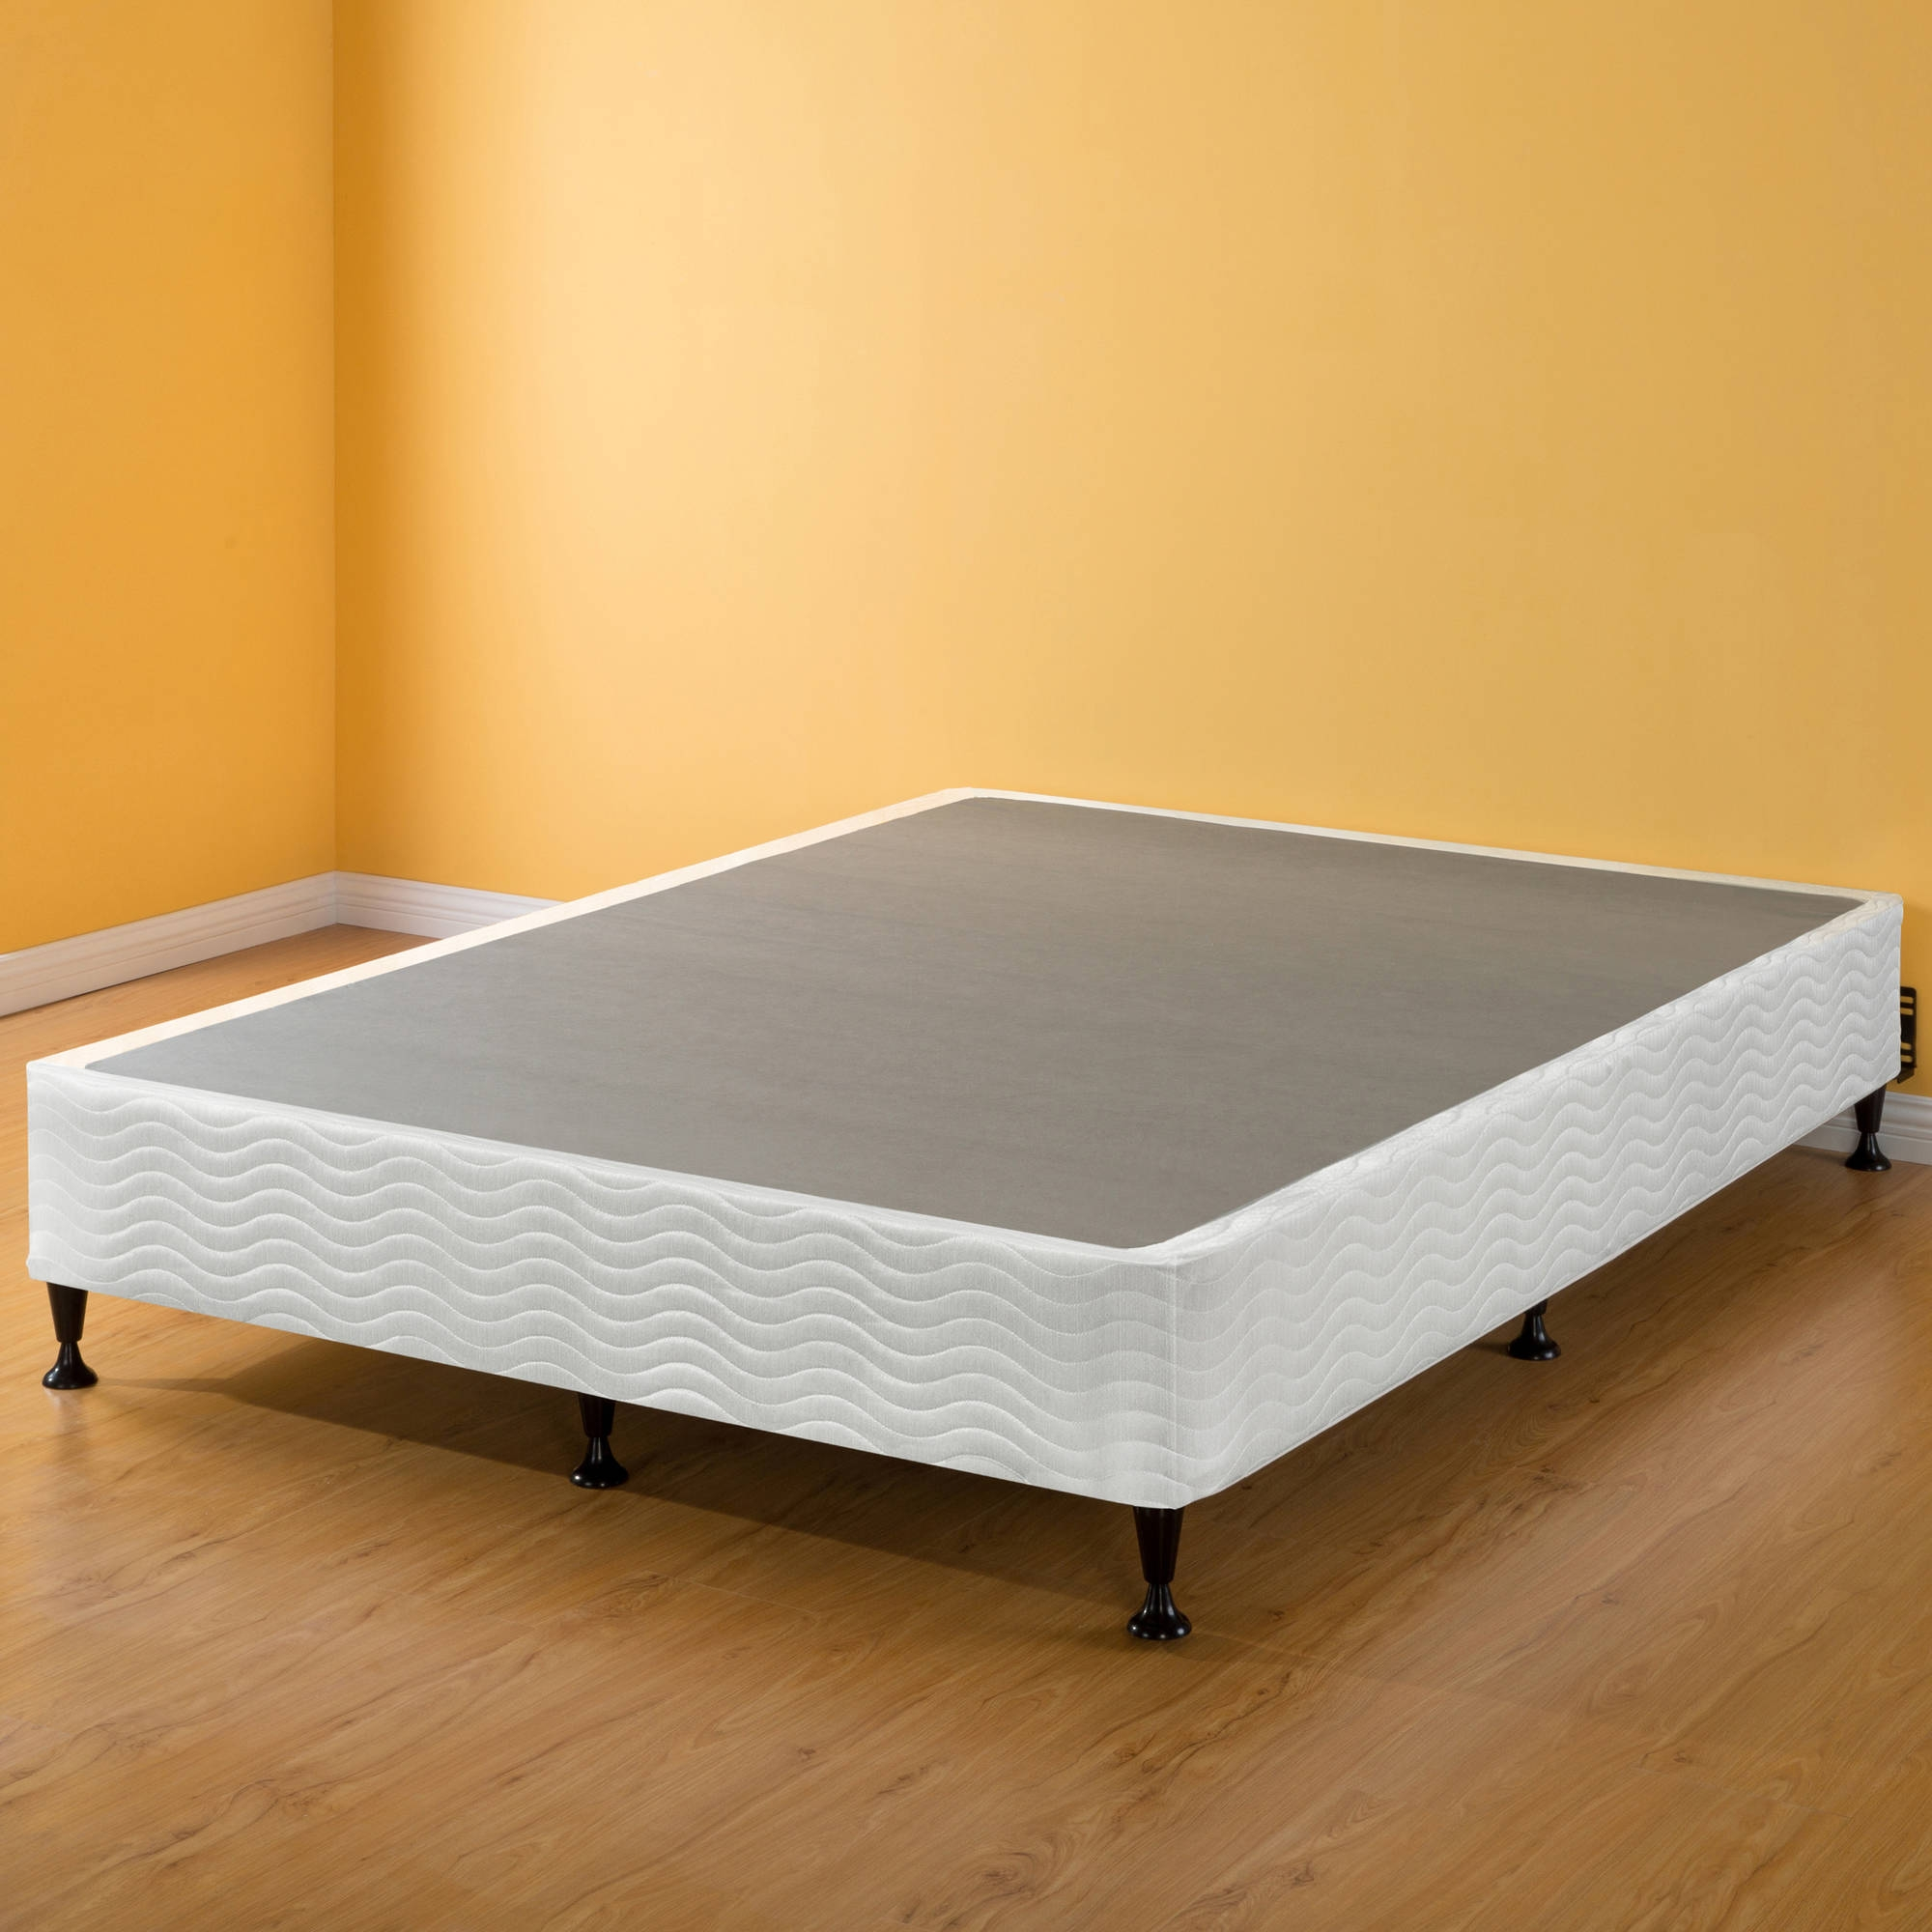 King Bed Frame For Box Spring And Mattress2000 X 2000